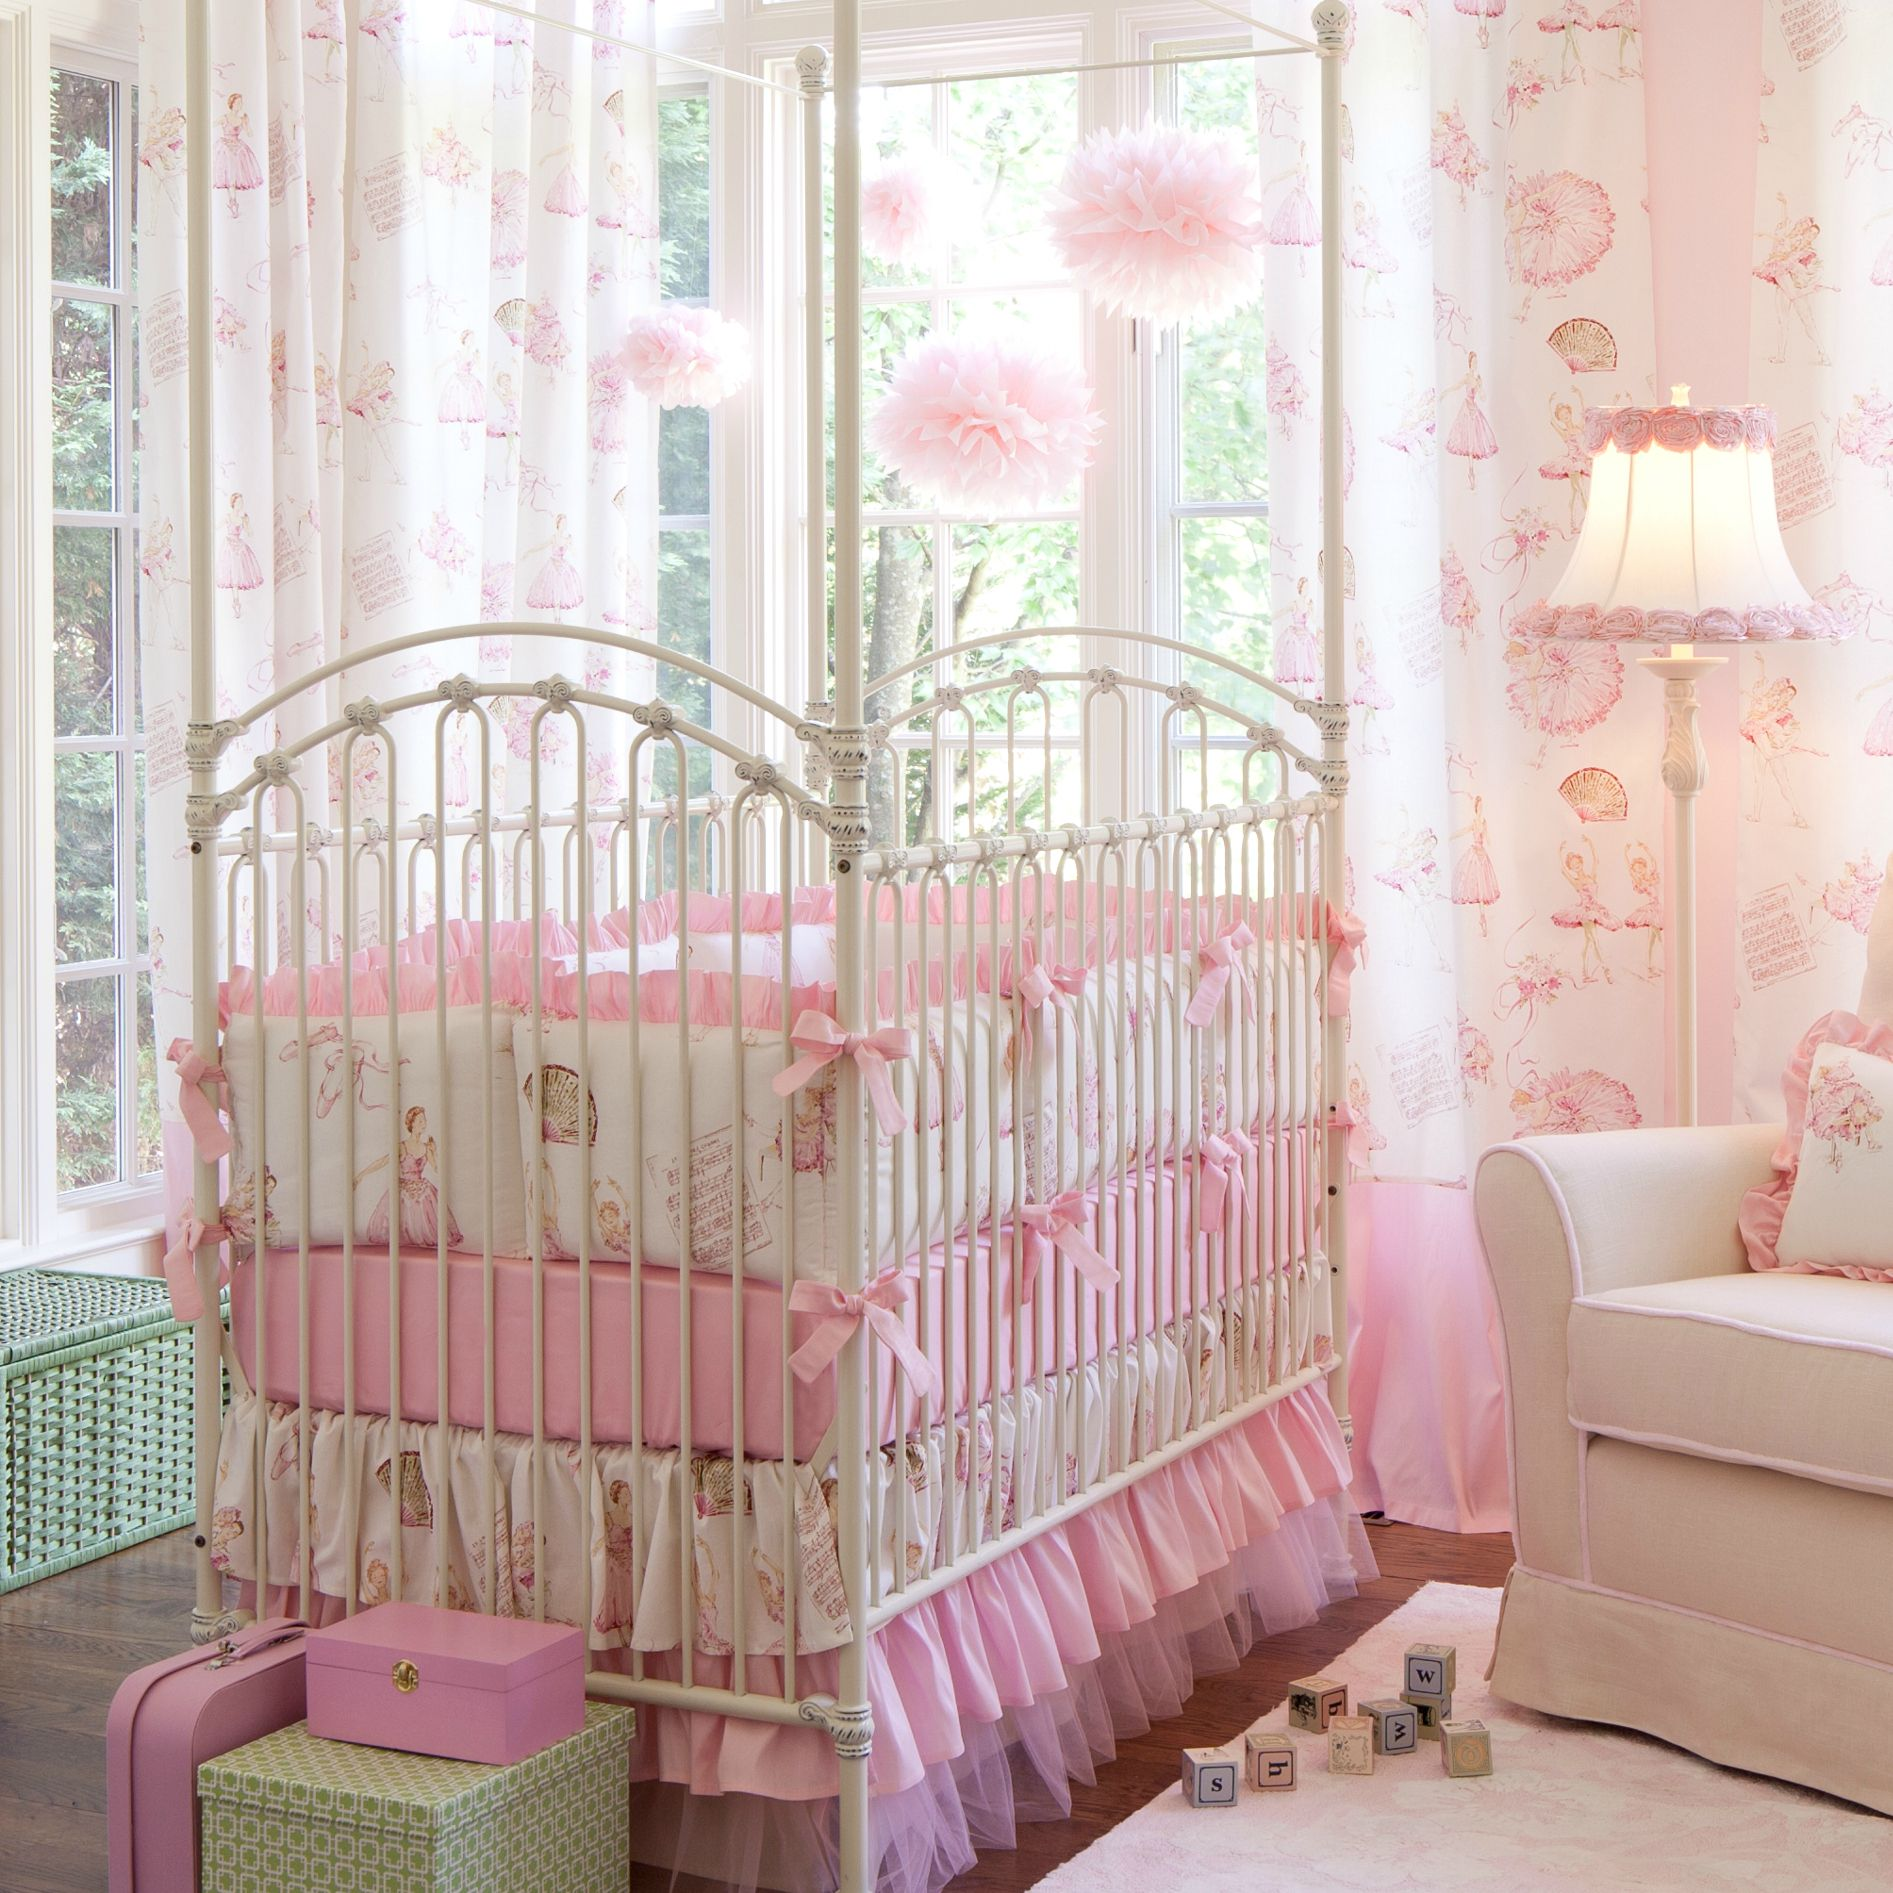 Giveaway Crib Bedding Set from Carousel Designs Crib